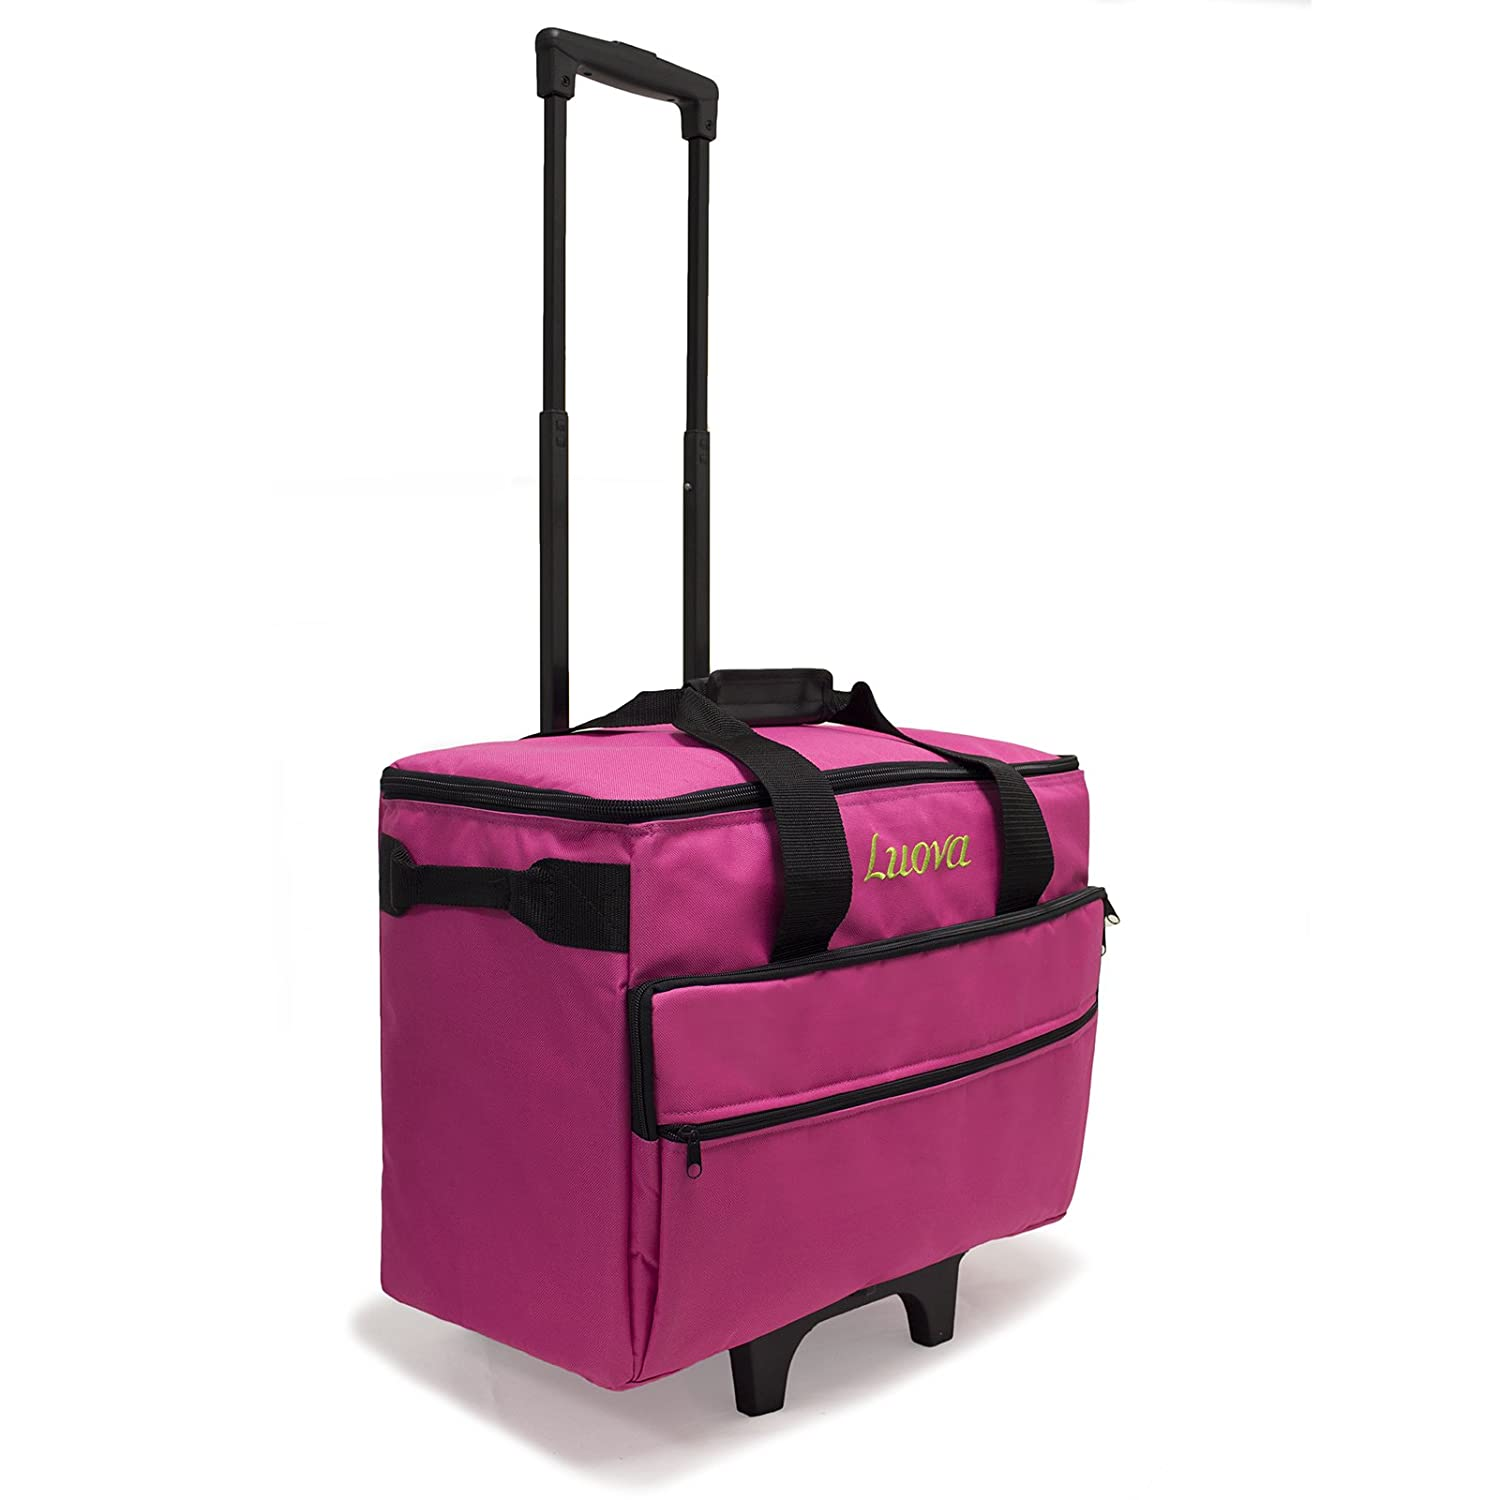 Luova 19 Rolling Sewing Machine Trolley in Pink L19-PK